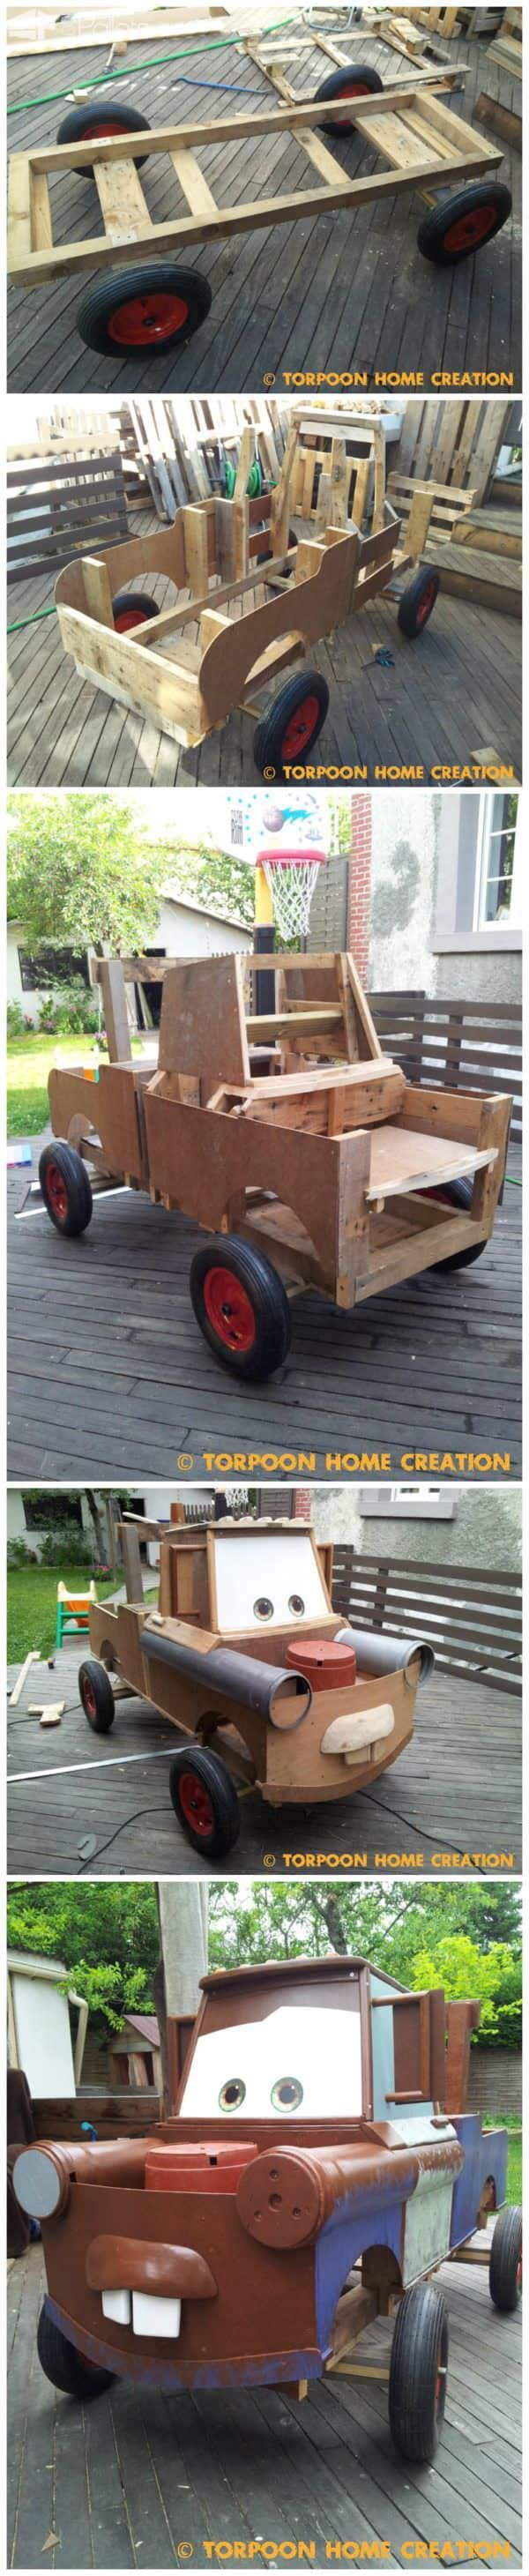 Mater-repurposed-cars